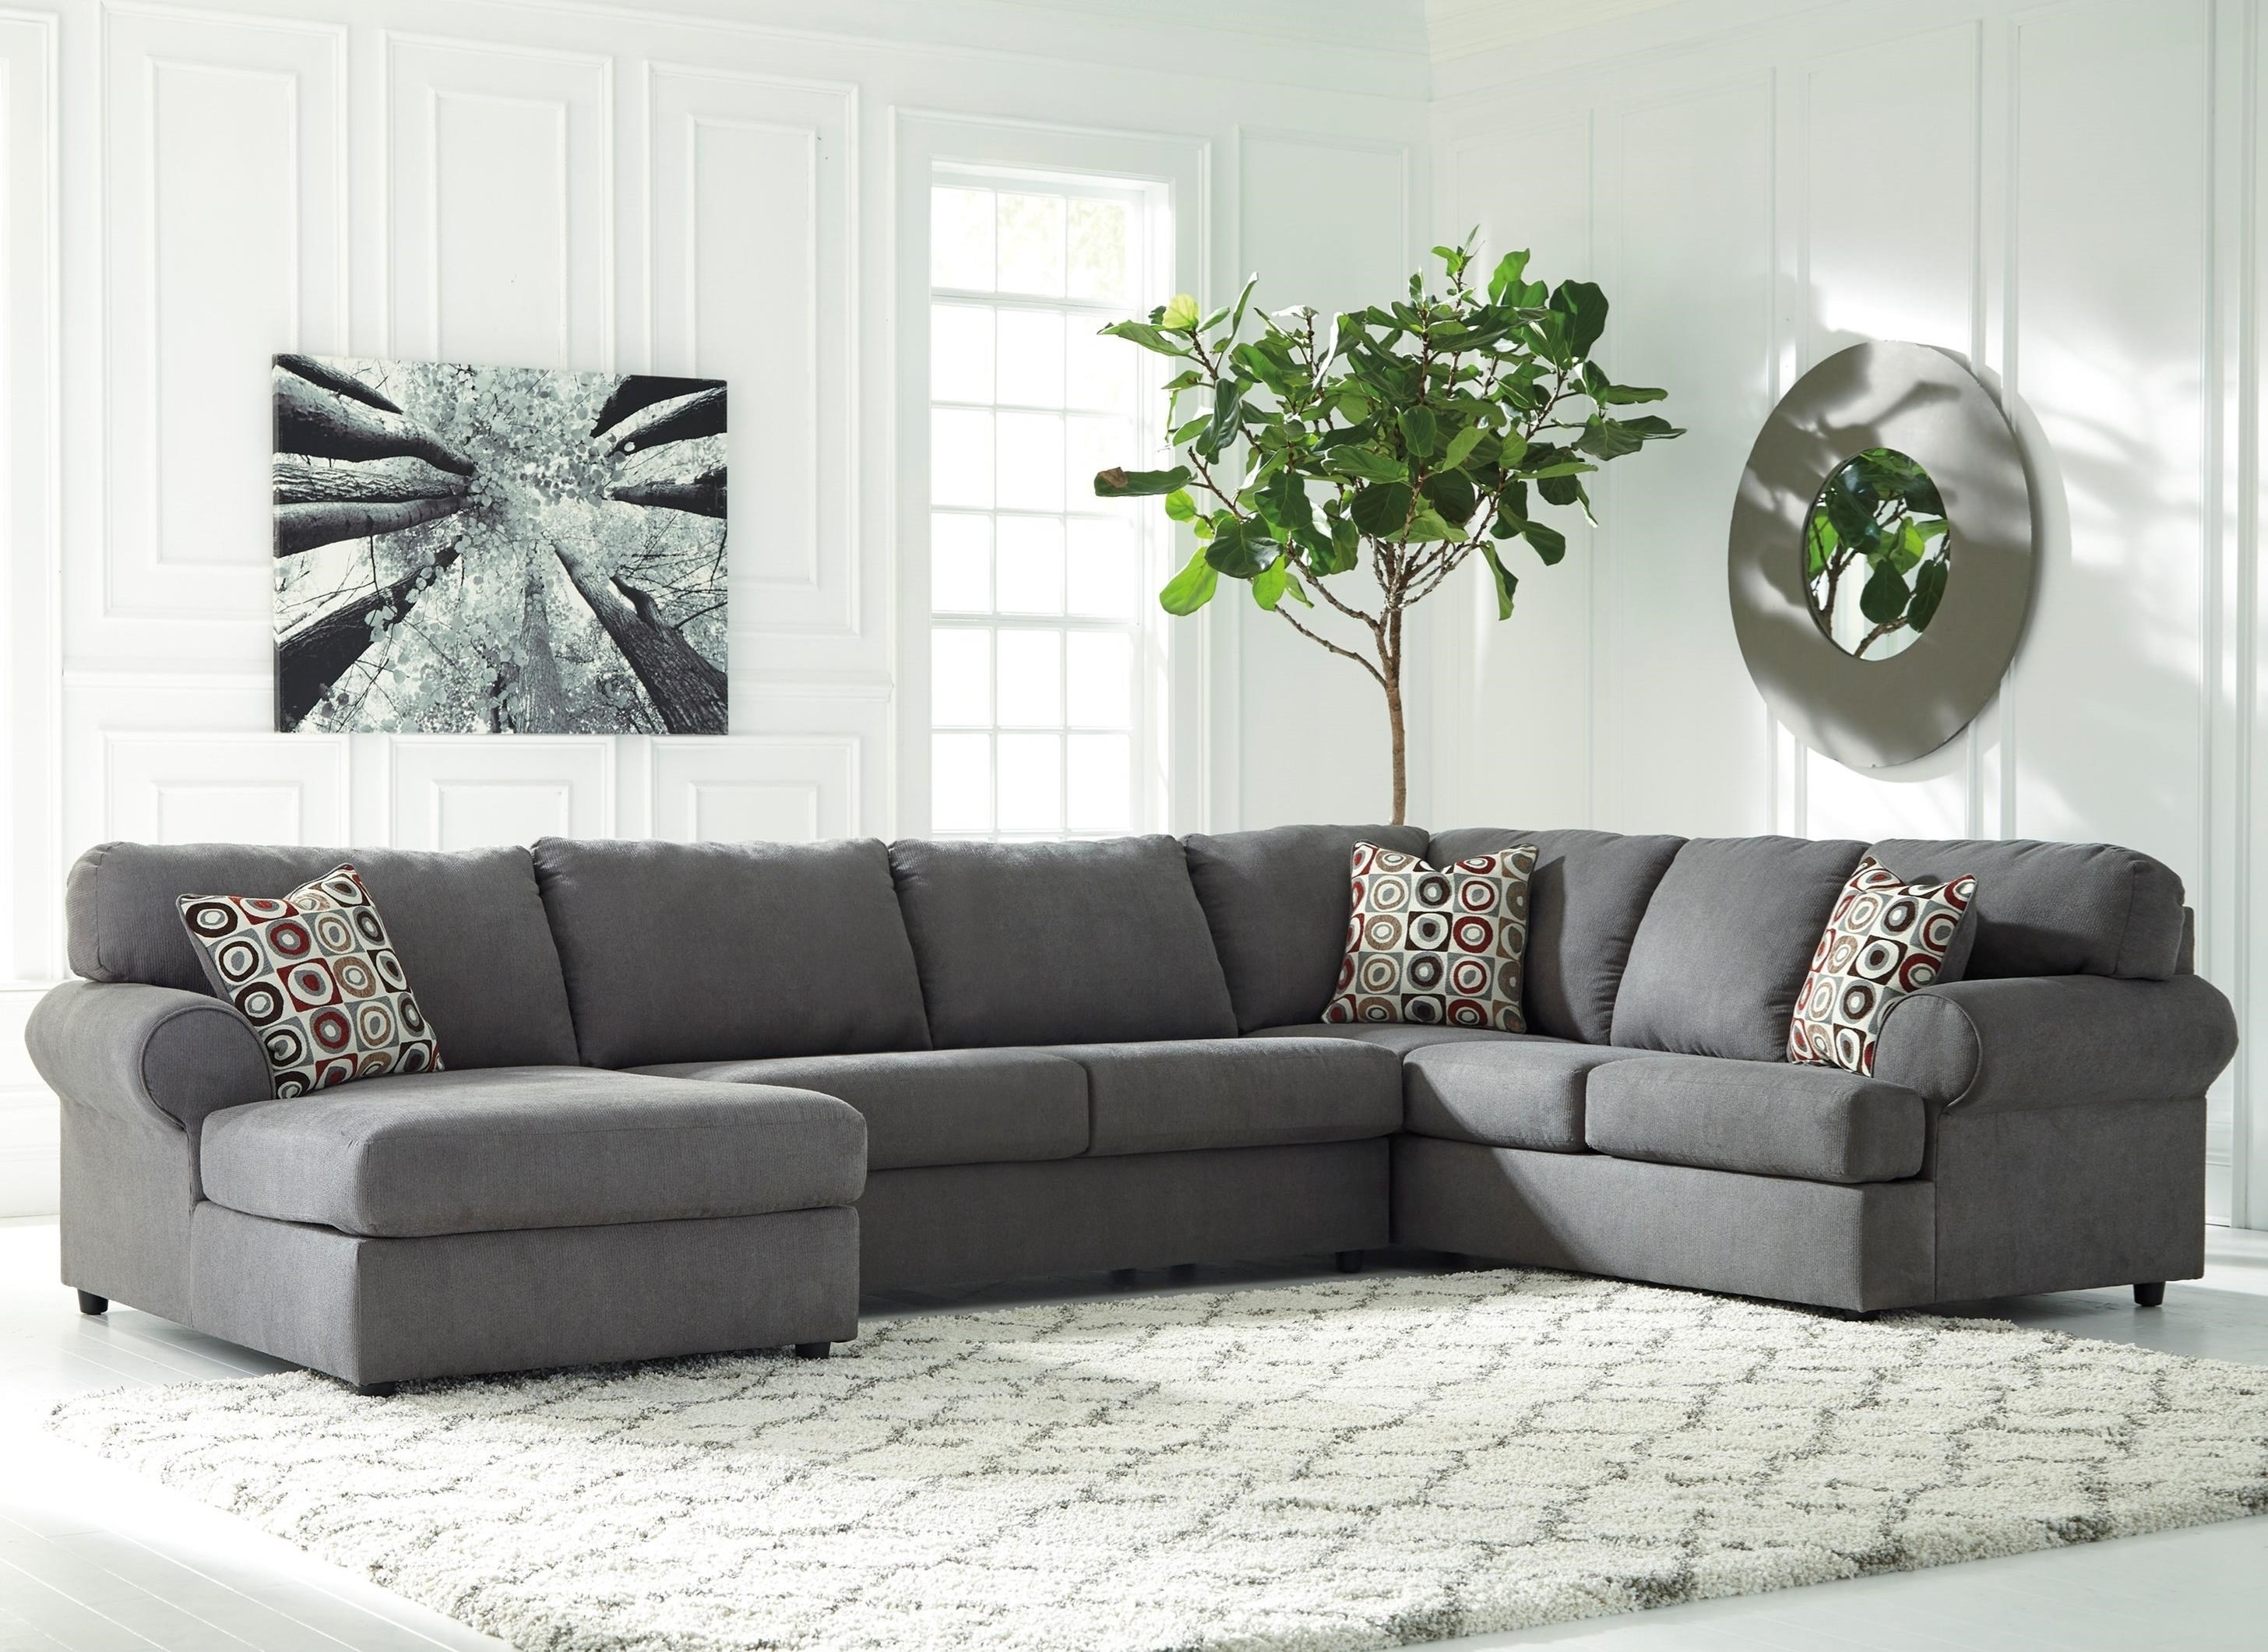 3 Piece Sectional - Locsbyhelenelorasa for Harper Foam 3 Piece Sectionals With Raf Chaise (Image 1 of 30)